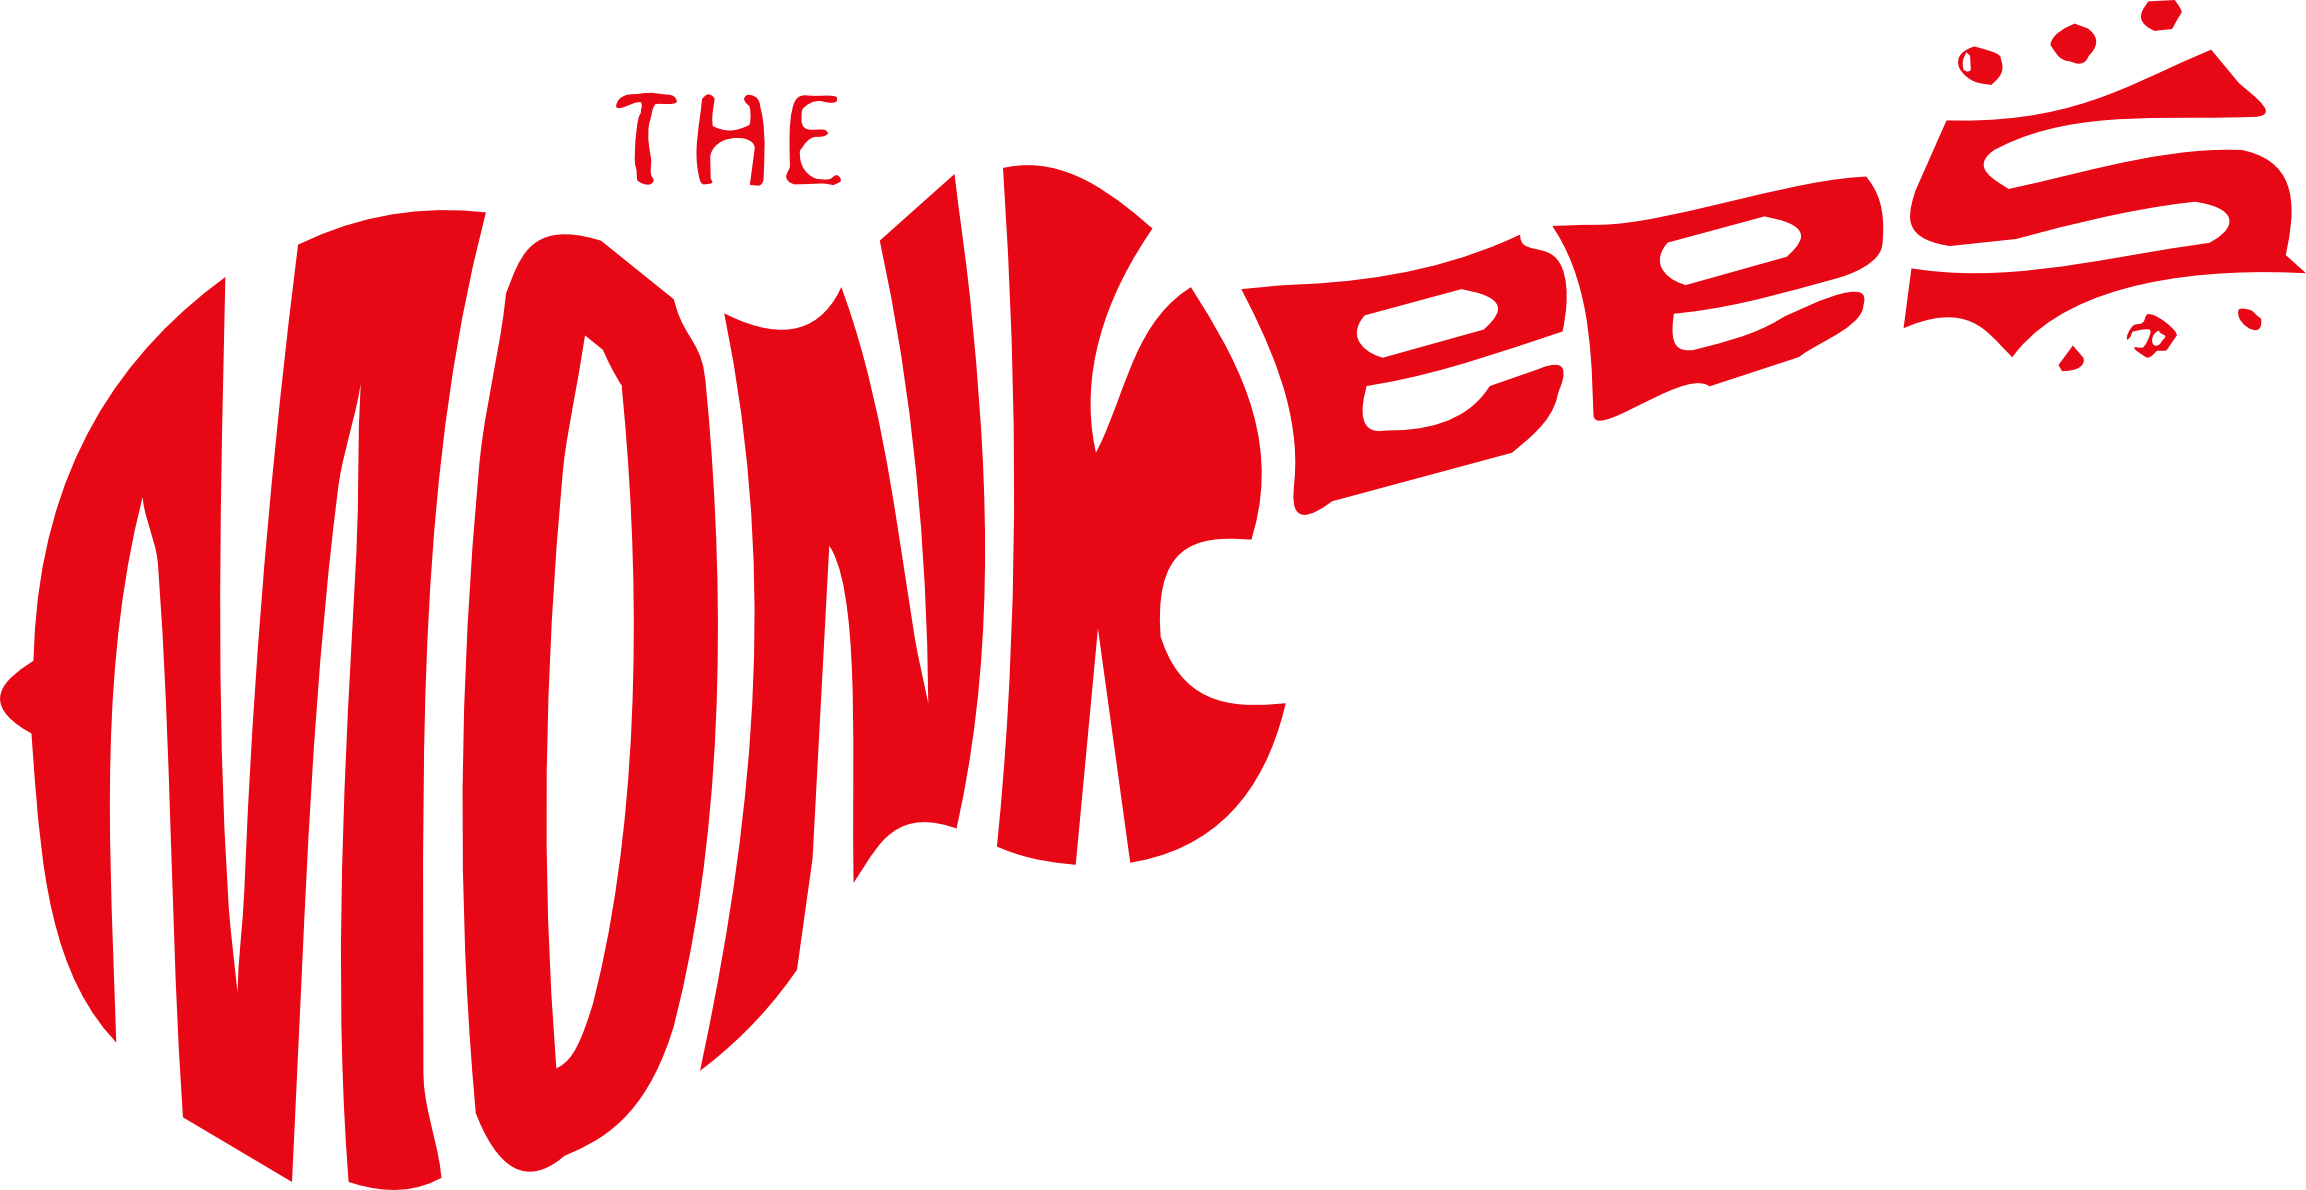 The Monkees (1966-1968) NBC, (1980s) reruns on Nickelodeon